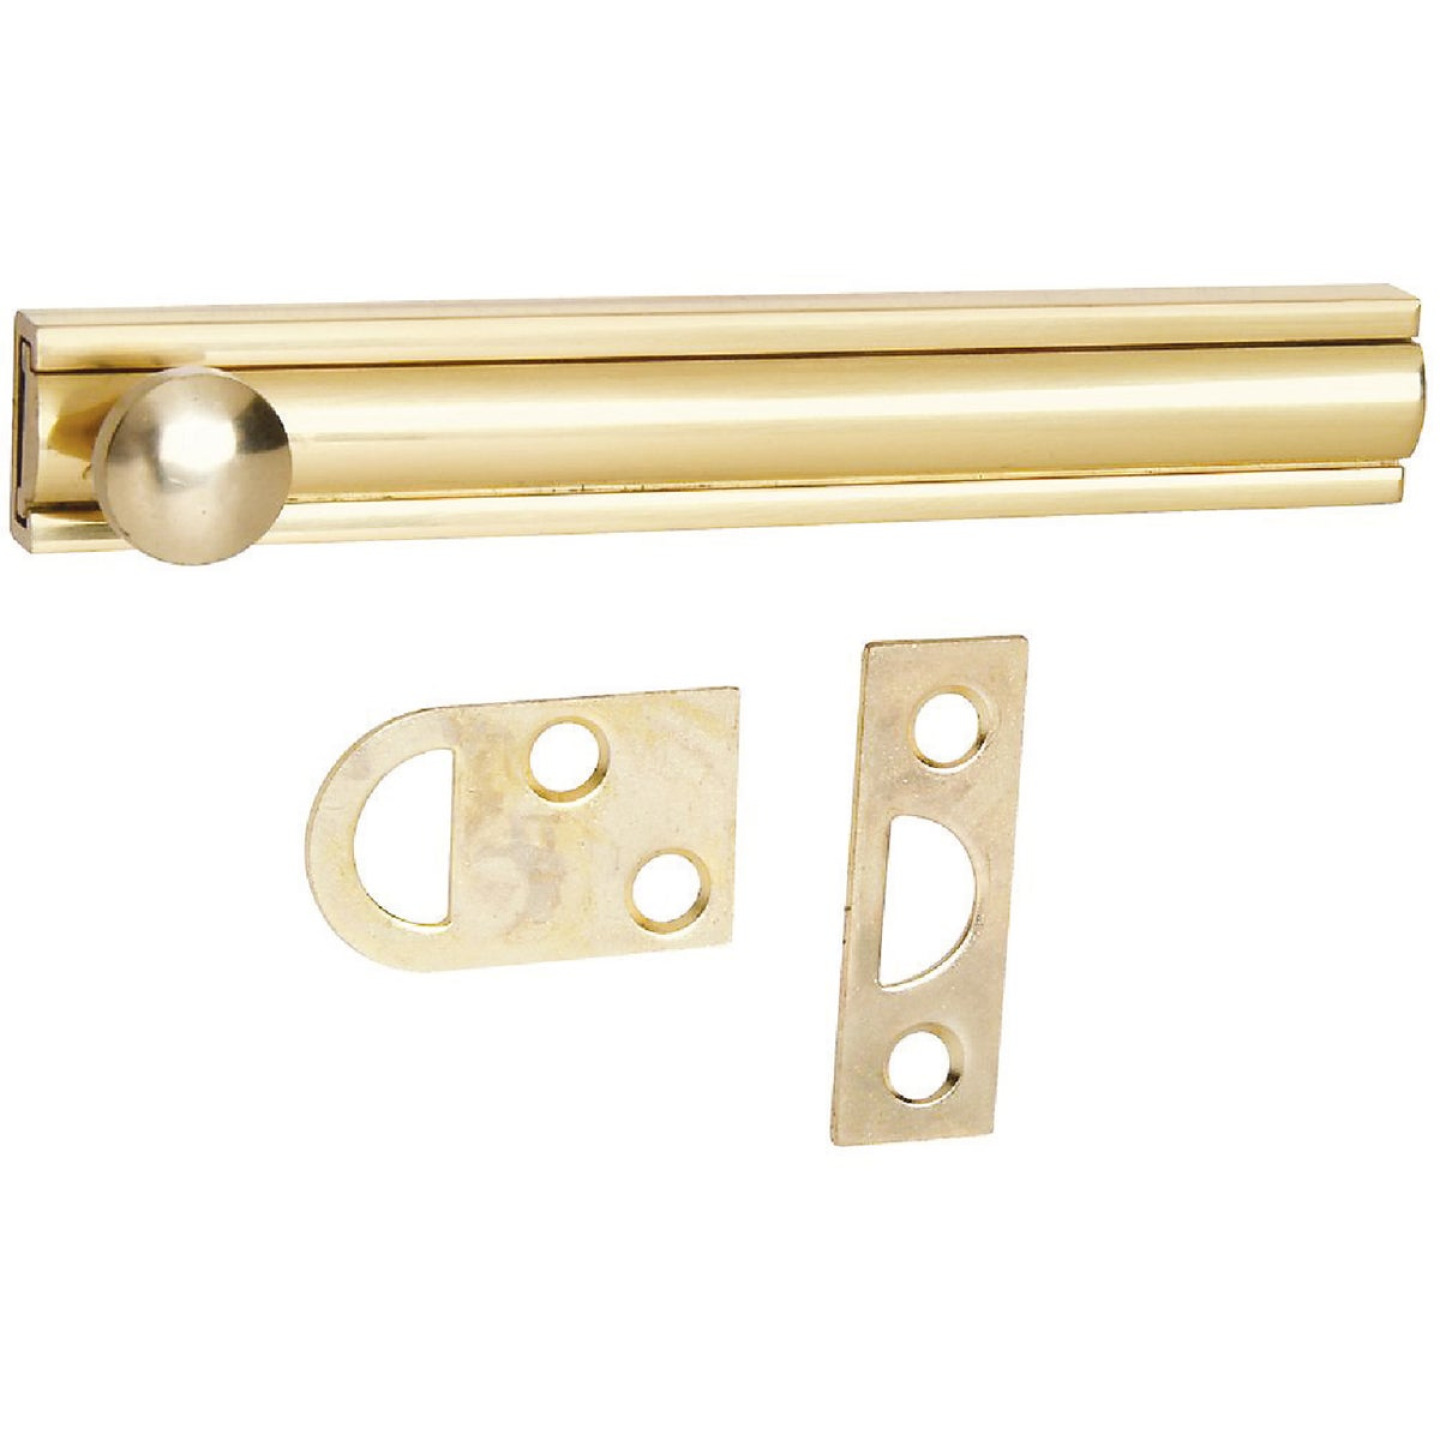 National Gallery Series 4 In. Polished Brass Door Surface Bolt Image 1